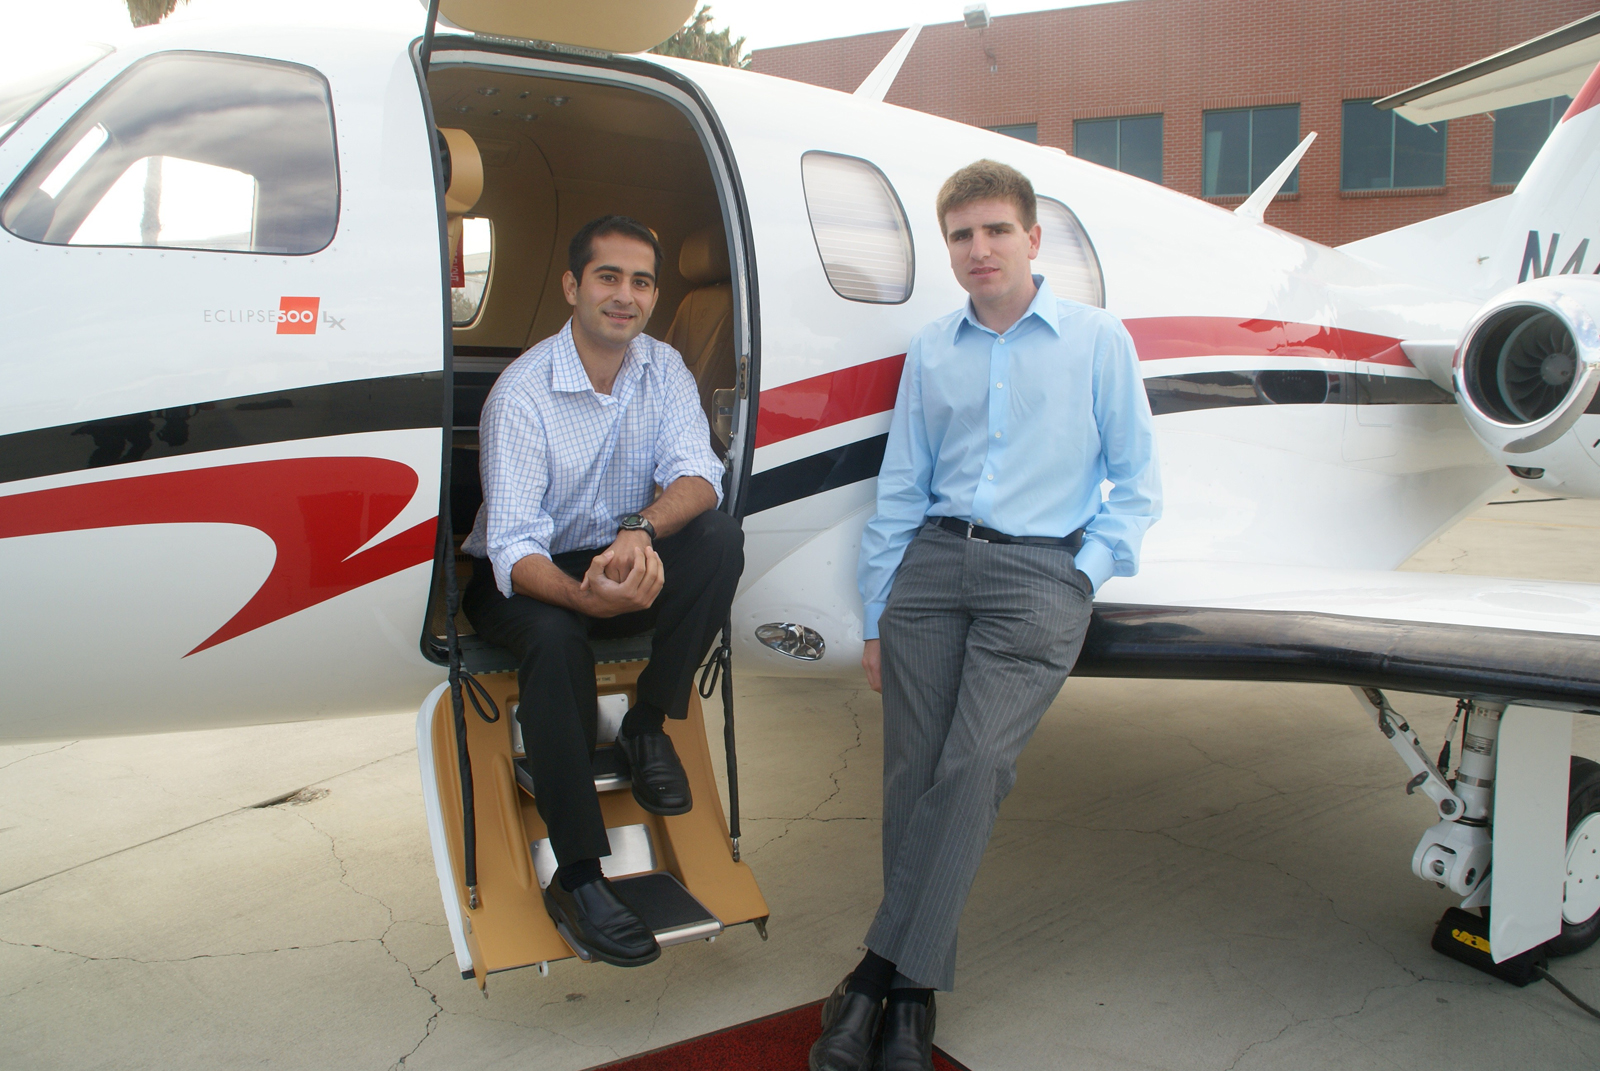 jetAVIVA Offers Full-Service Management to Eclipse 500 Owners